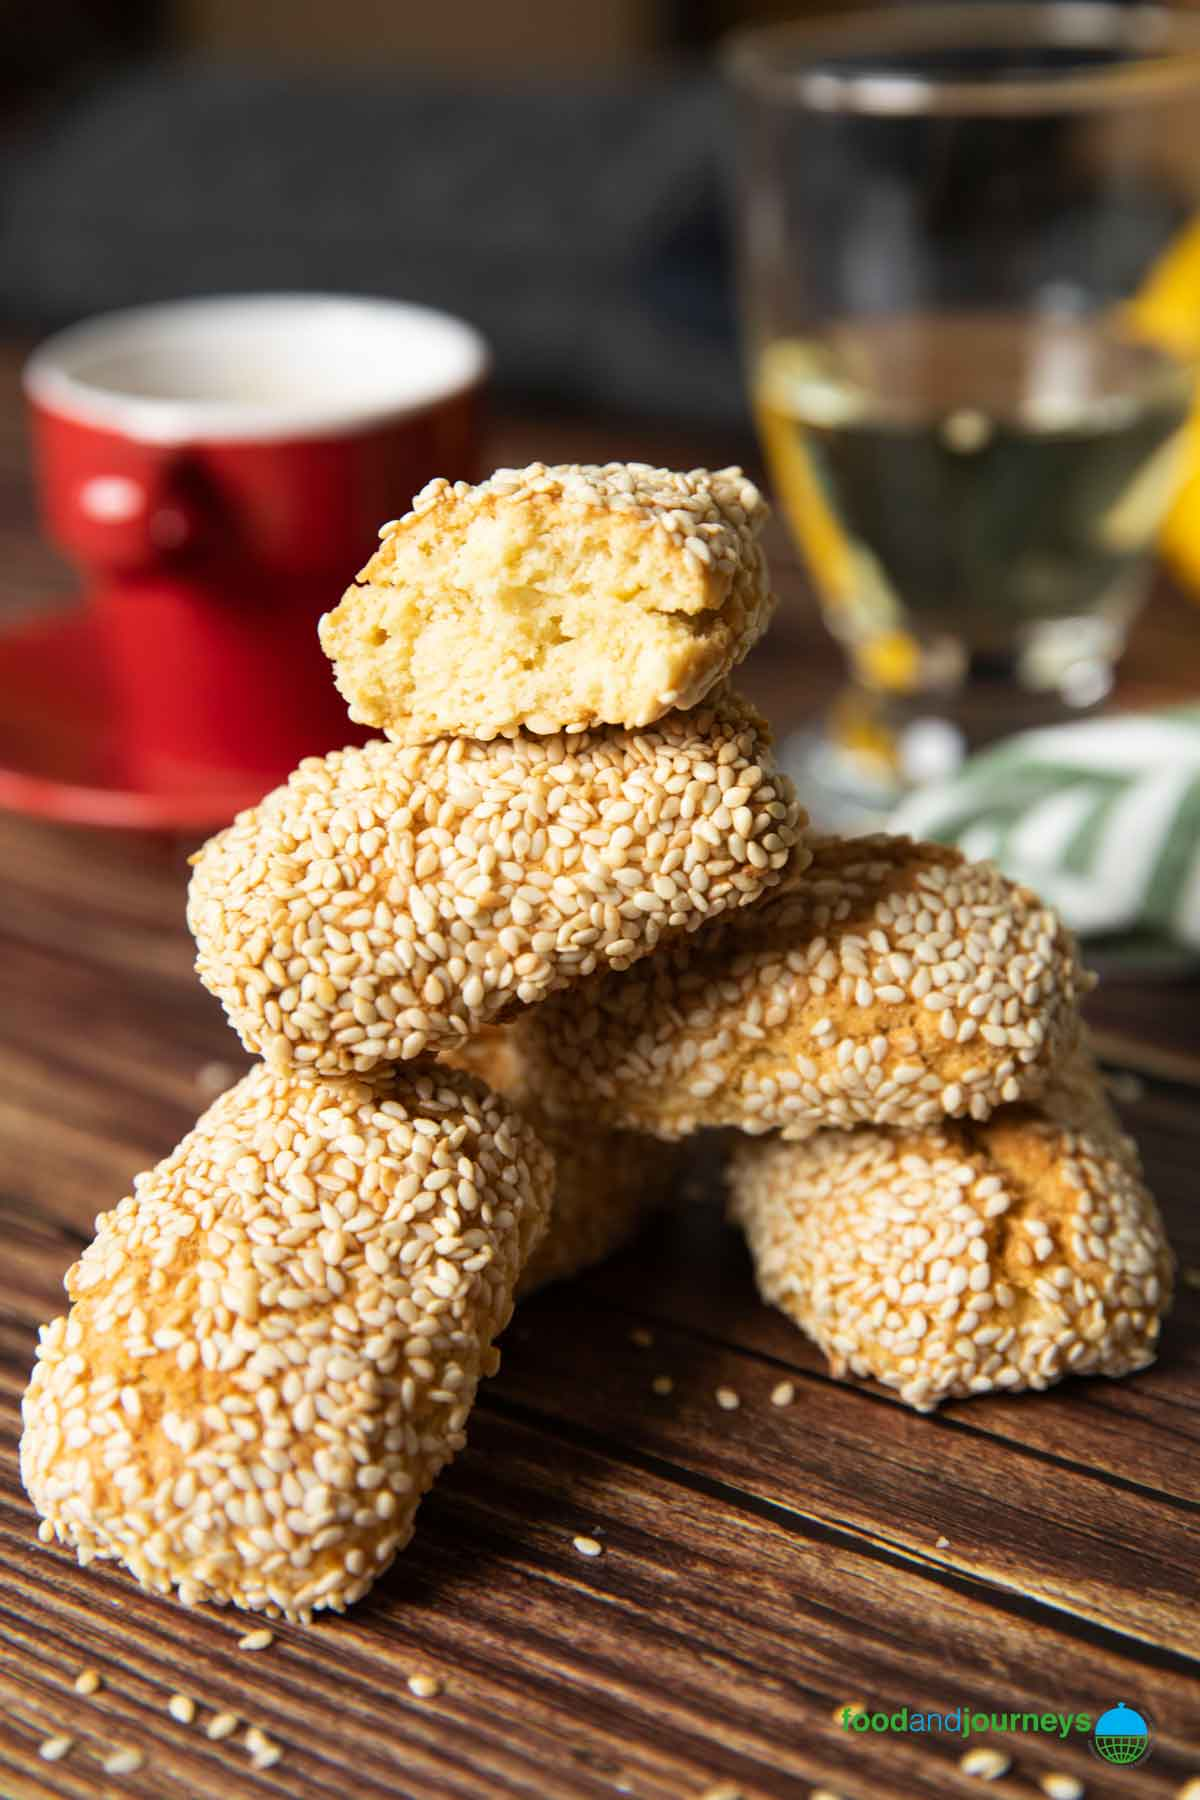 A stack of Italian sesame cookies with a cup of espresso on the background.